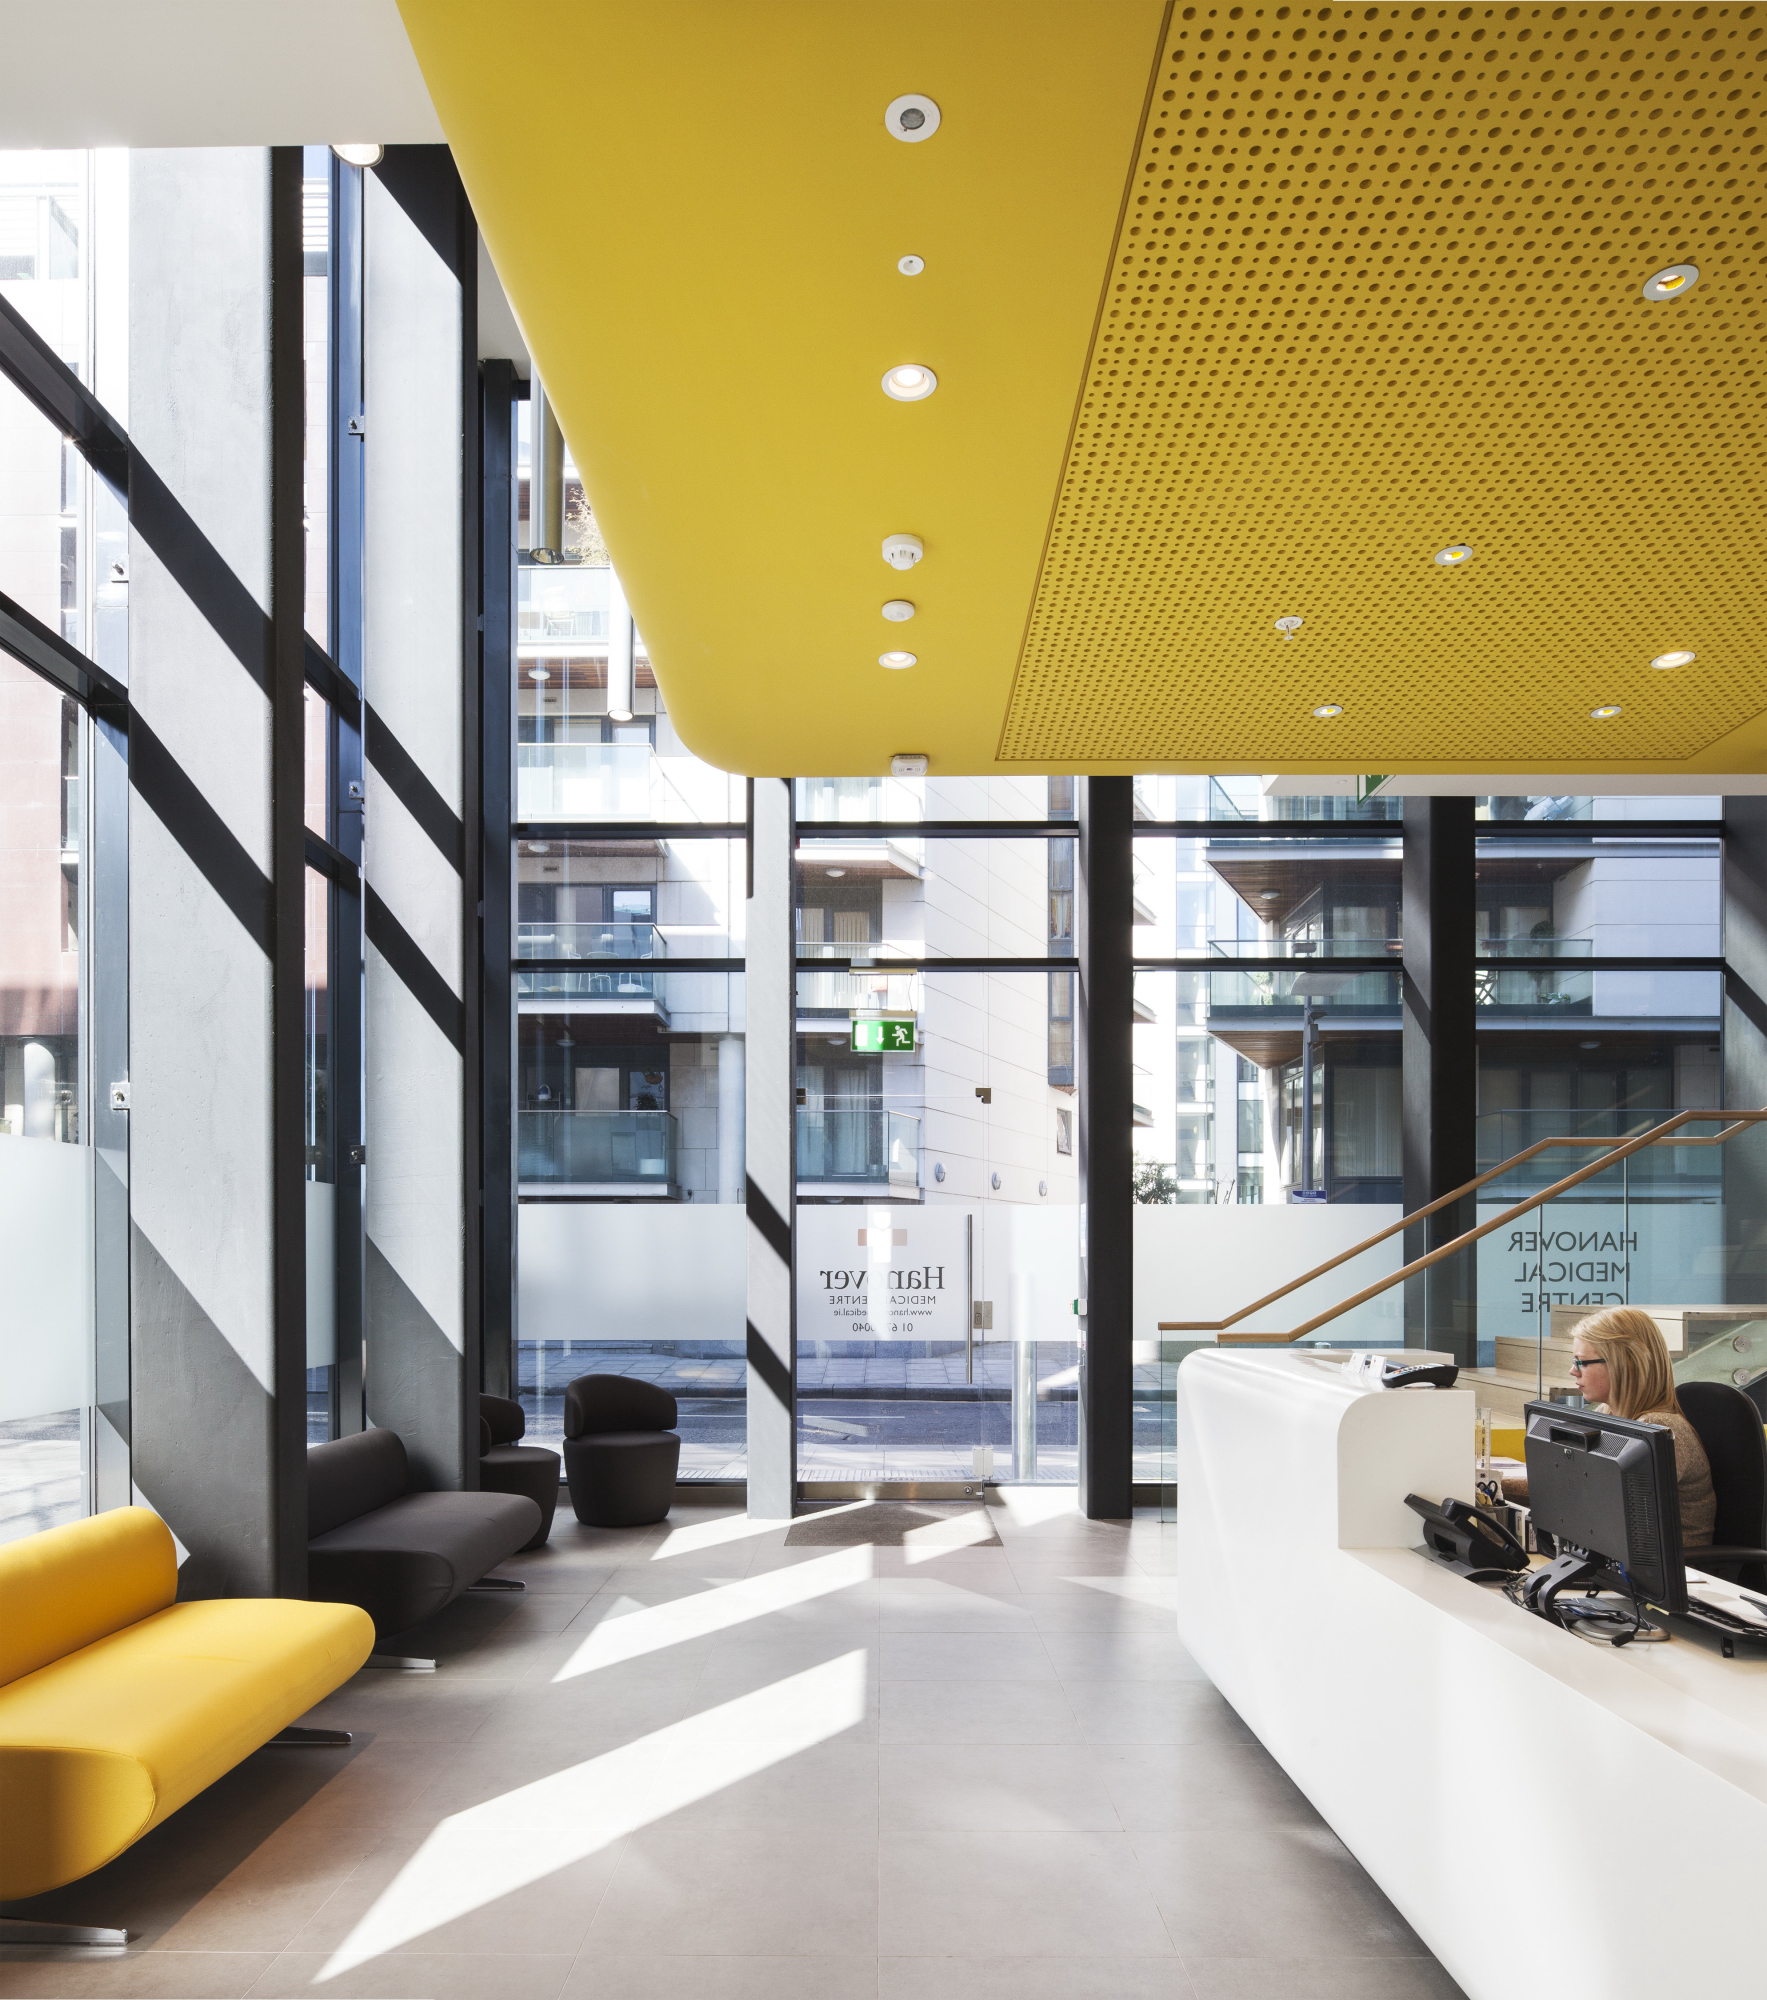 "- ""The architectural team listened carefully to our needs as providers of medical services and the result is a thoroughly modern, calming space that has flexibility and patient comfort at the centre of its design.A challenge of the site was the north facing aspect between tall buildings. The use of natural daylight and the bright, bold treatment of the curved edged mezzanine level have resulted in a space that patients comment on as 'welcoming' and 'cheerful'. Design features such as high levels of sound insulation between consulting rooms ensure maximum comfort for both staff and patients. The quality of the environment achieved reflects our objective to create a 'best of type' medical centre to meet the highest universal access and HIQA standards.""Client Testimonial"